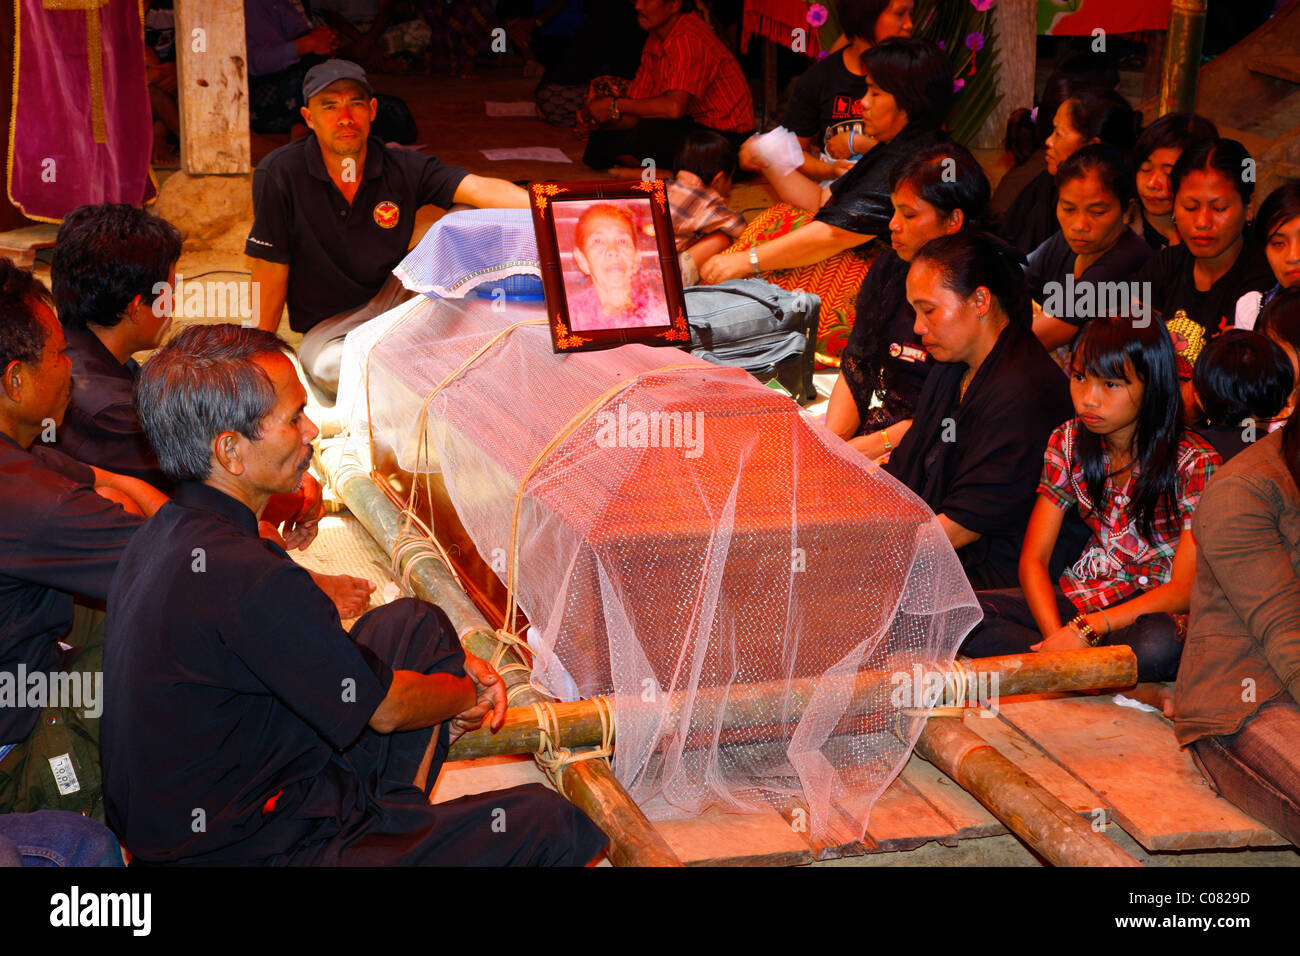 Coffin Customs Stock Photos  Coffin Customs Stock Images  Alamy